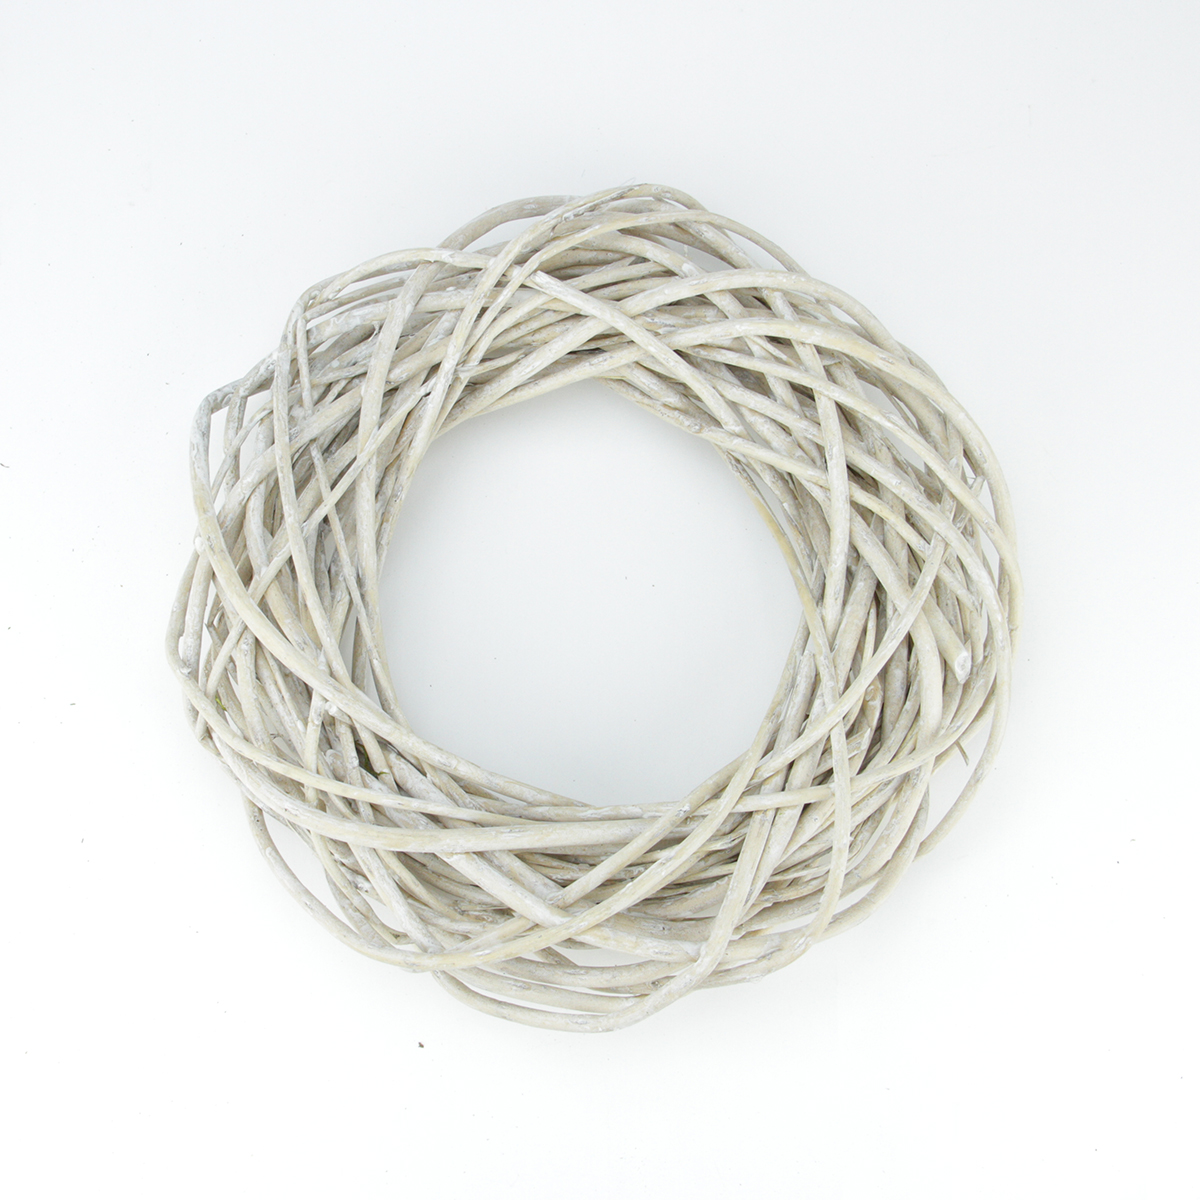 12 quot white pealed weeping willow branches artificial spring wreath